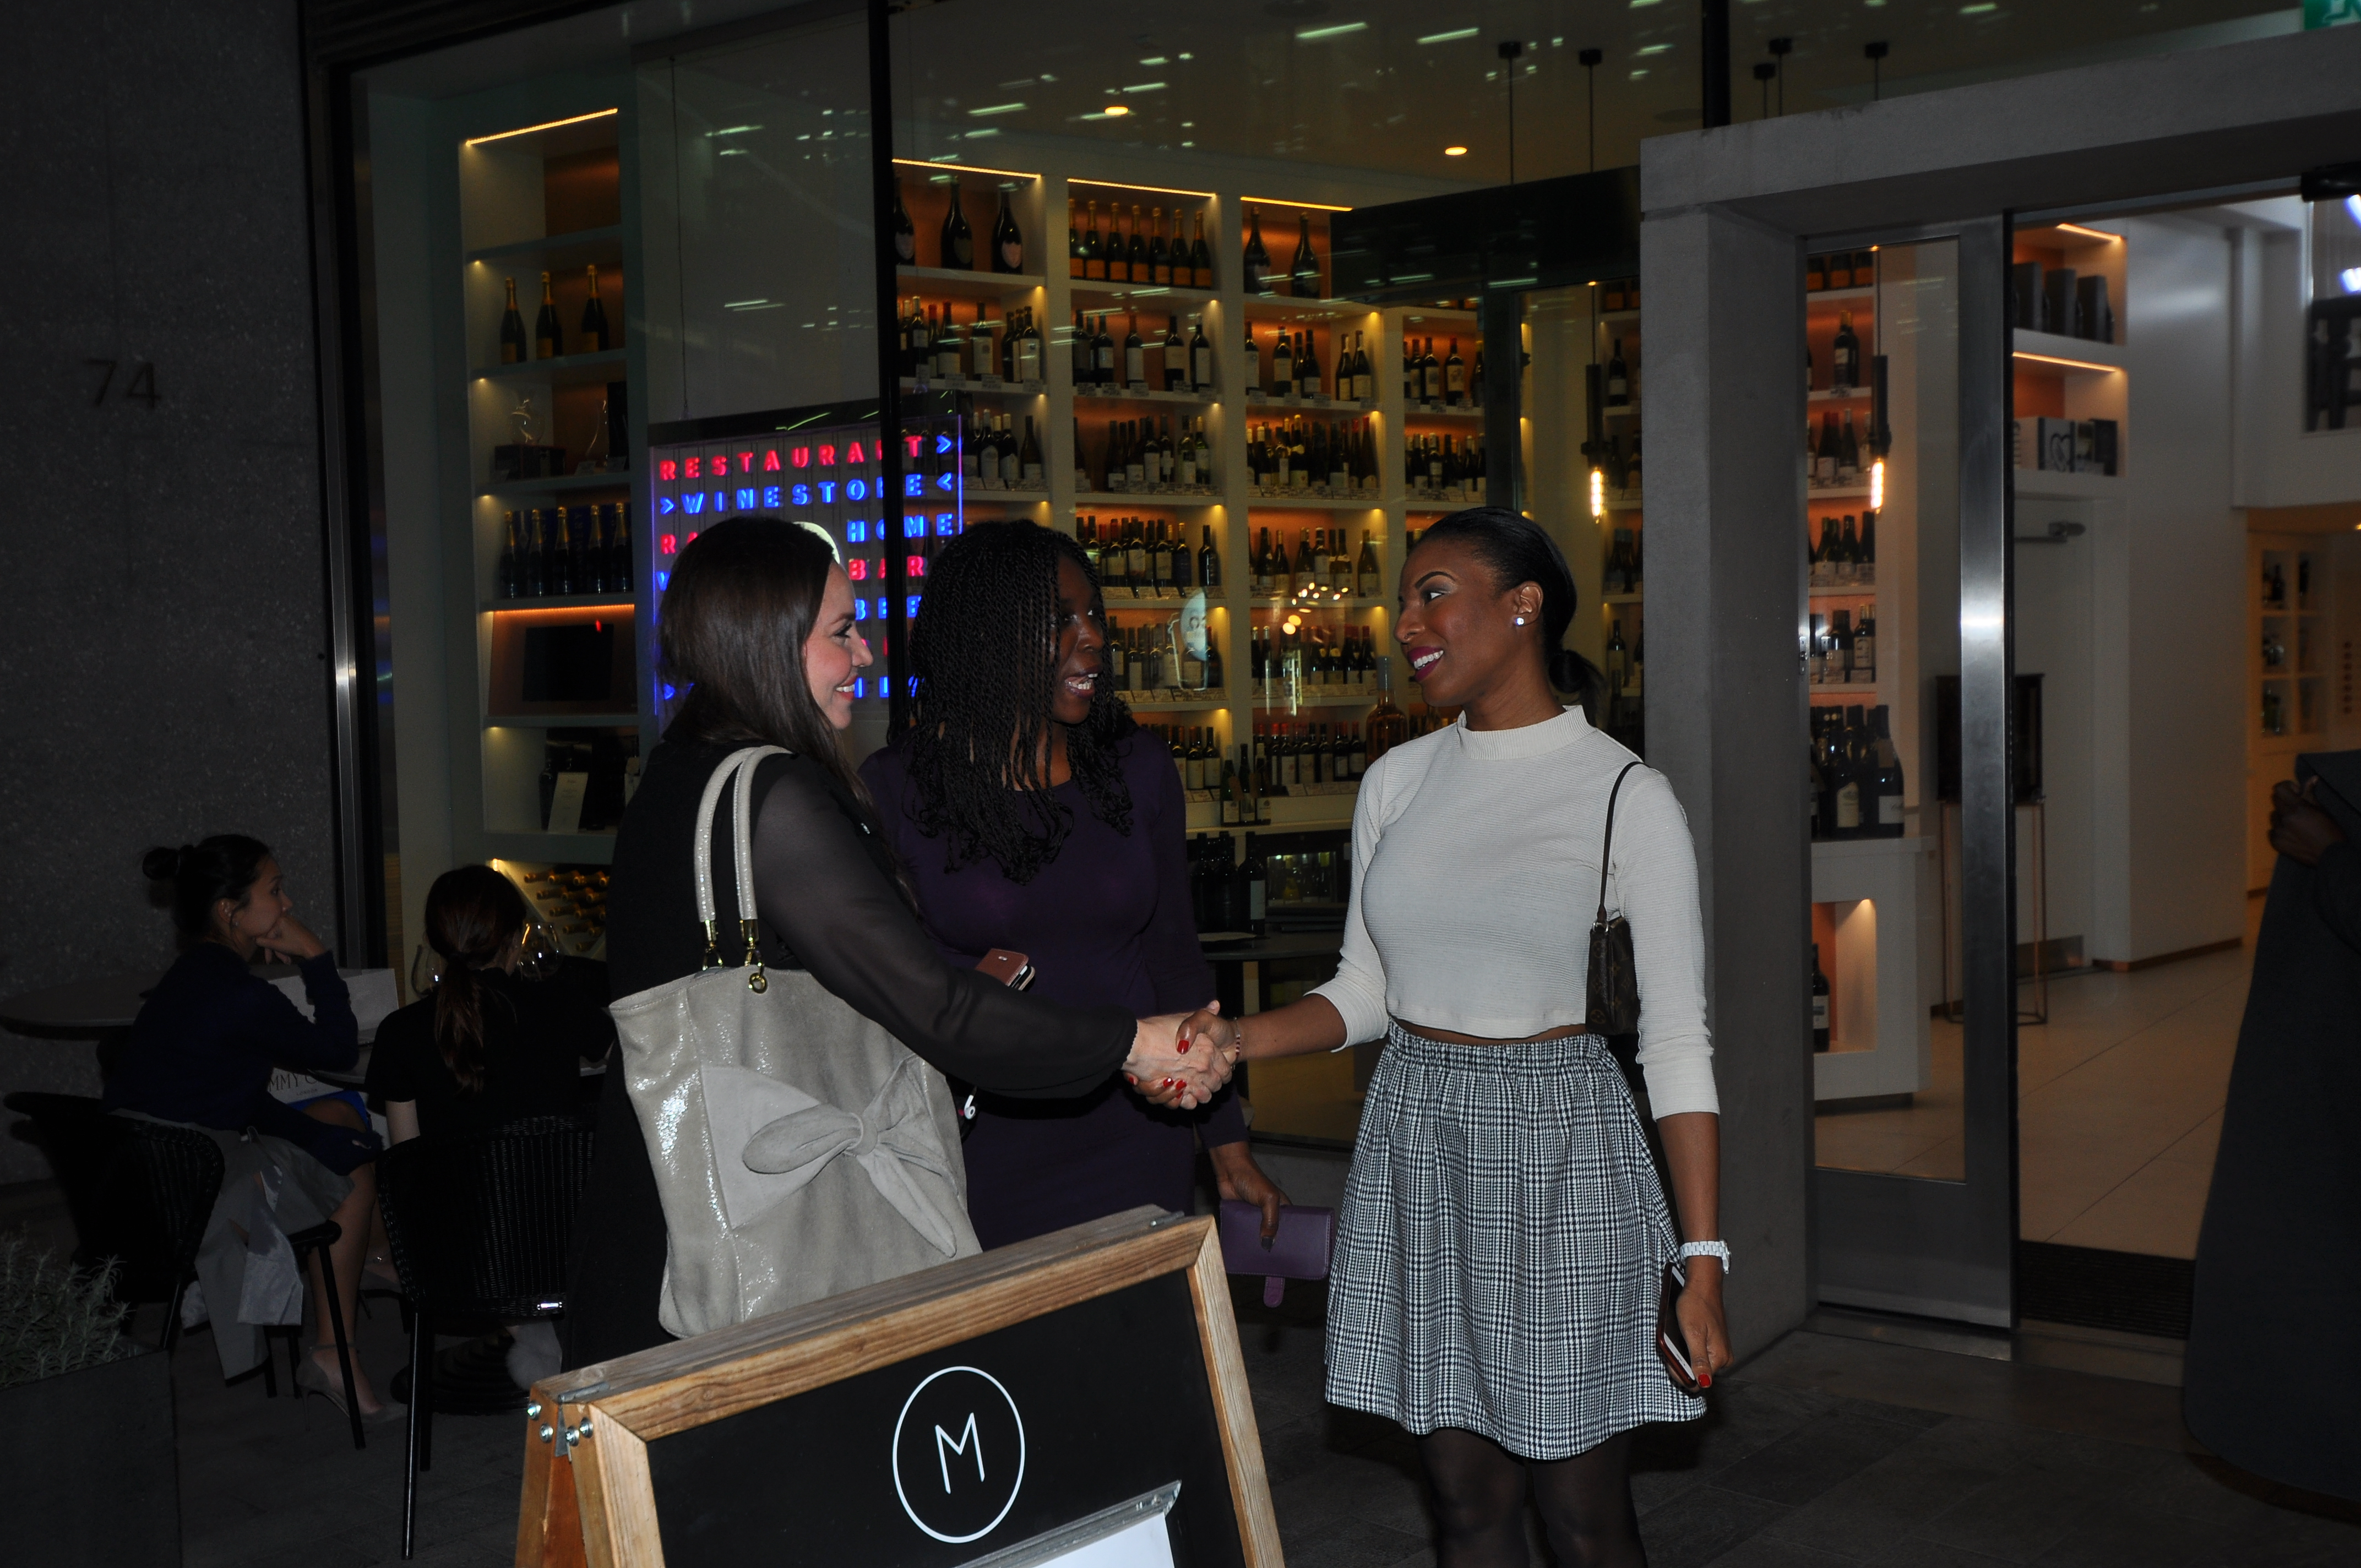 London Networking Event for Singles and Friends